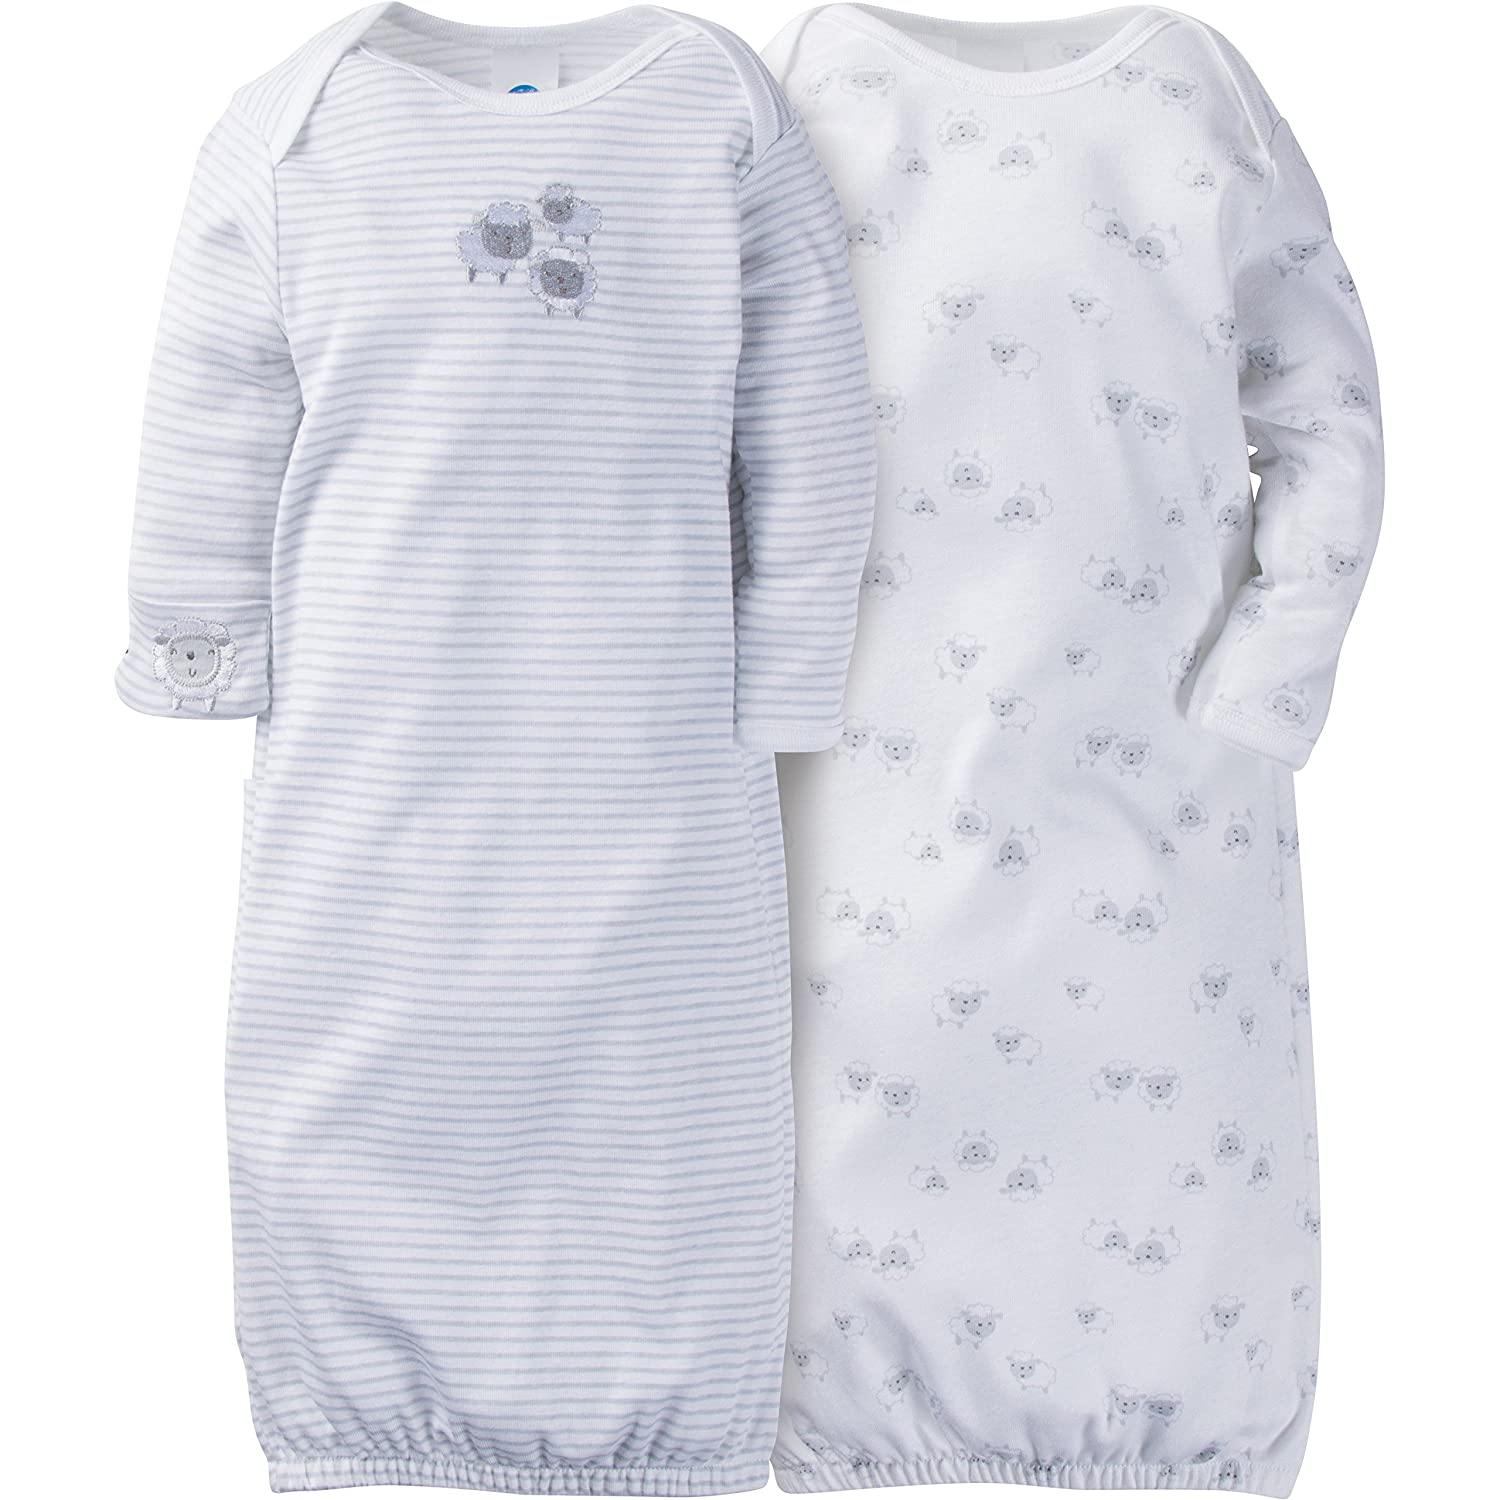 Gerber Baby Girls' 2 Pack Gown, Gerber Baby Girls 2 Pack Gown Elephants/Flowers 0-6 Months 93019216AG1706I